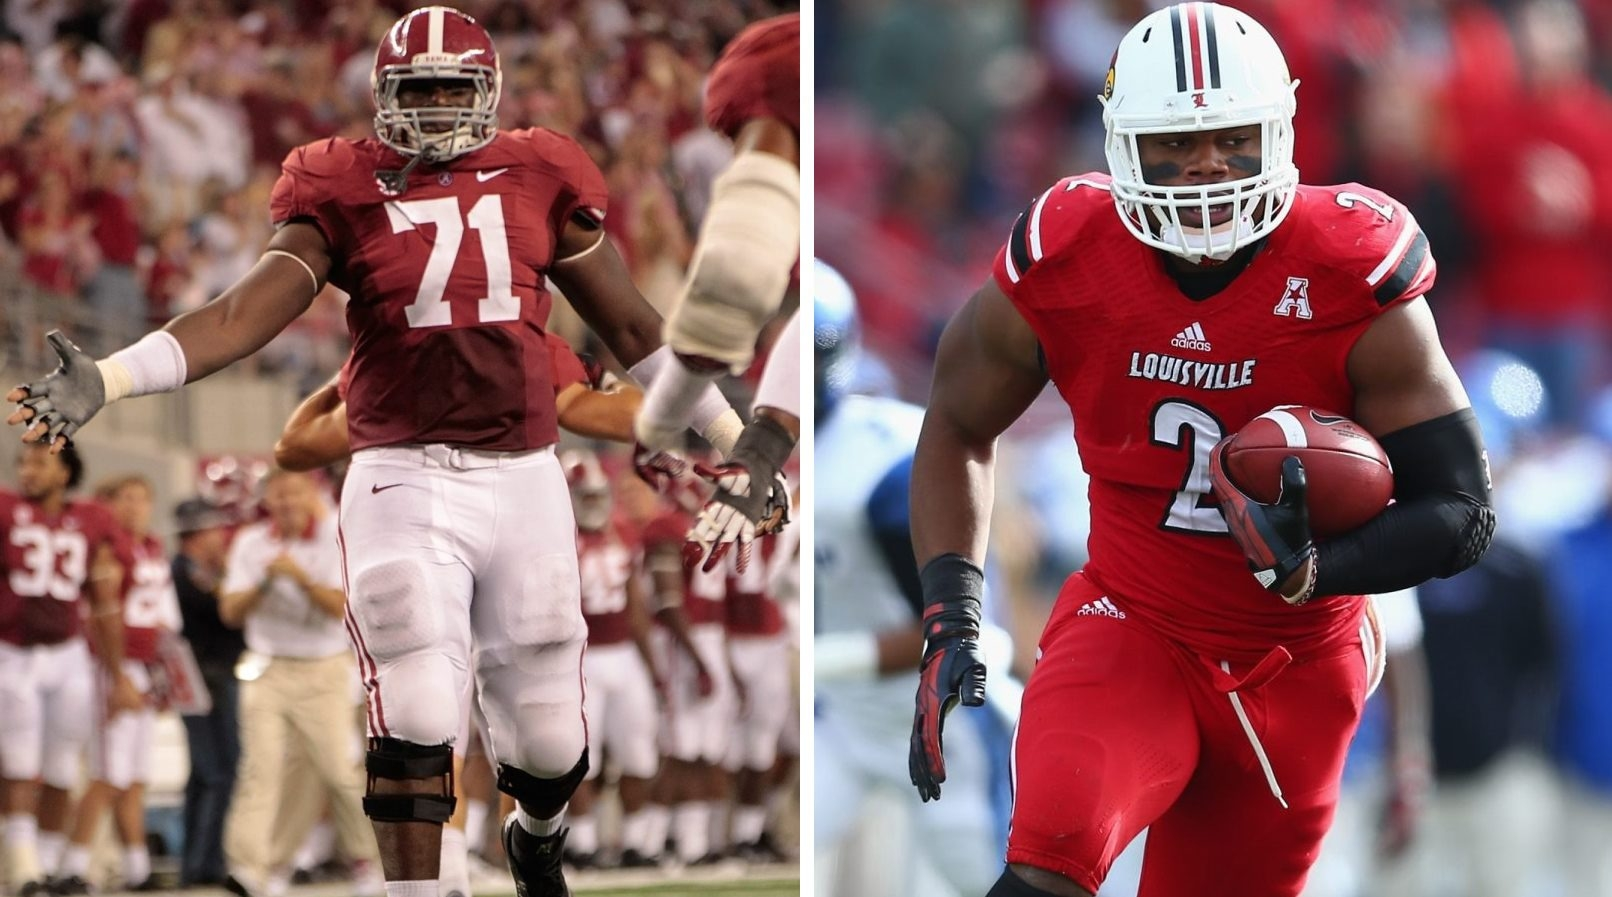 The newest additions to the Bills' roster are labama offensive tackle Cyrus Kouandjio, left, and Louisville linebacker Preston Brown.